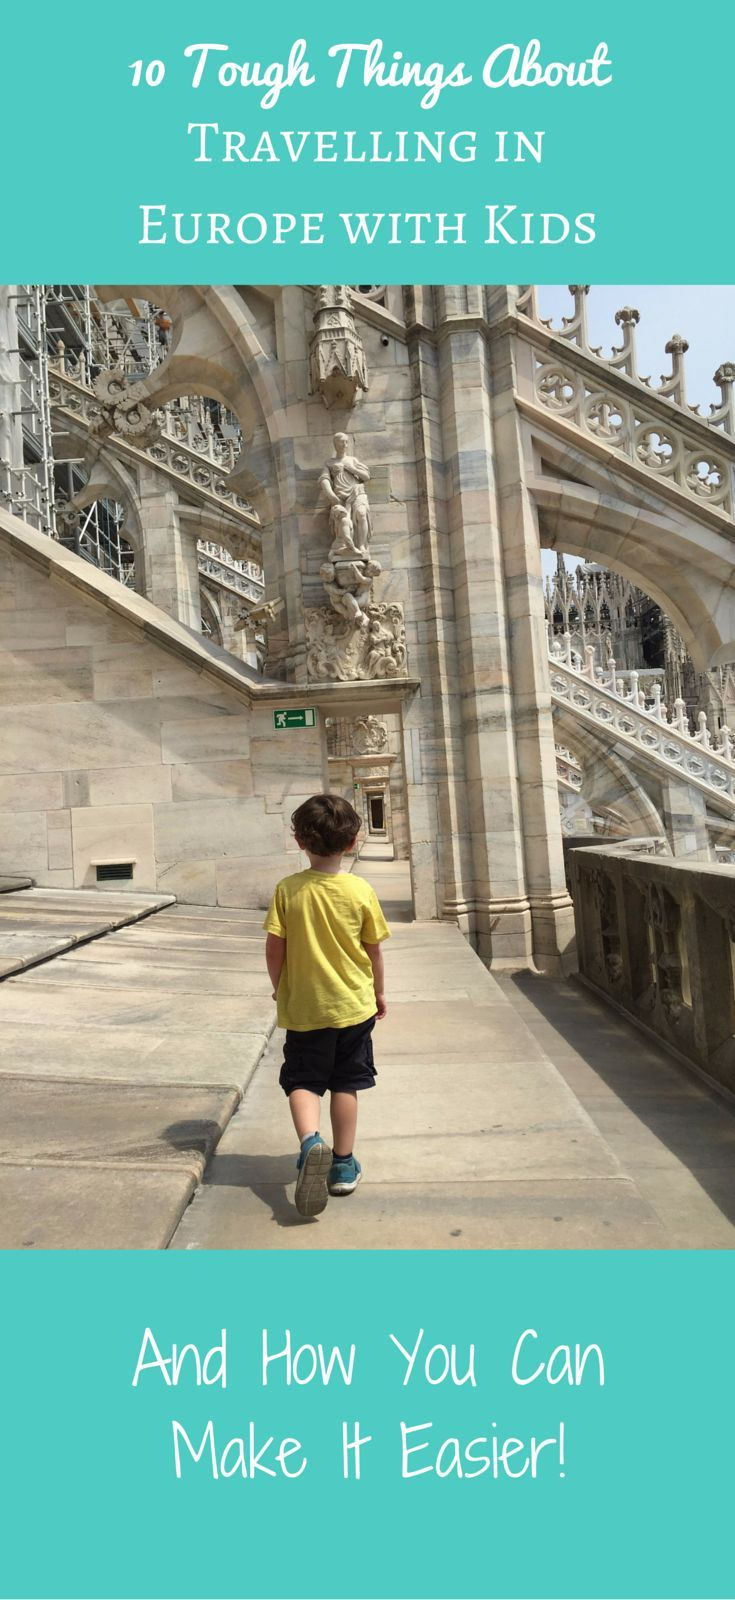 Travelling in Europe with Kids and tips how to make it easier